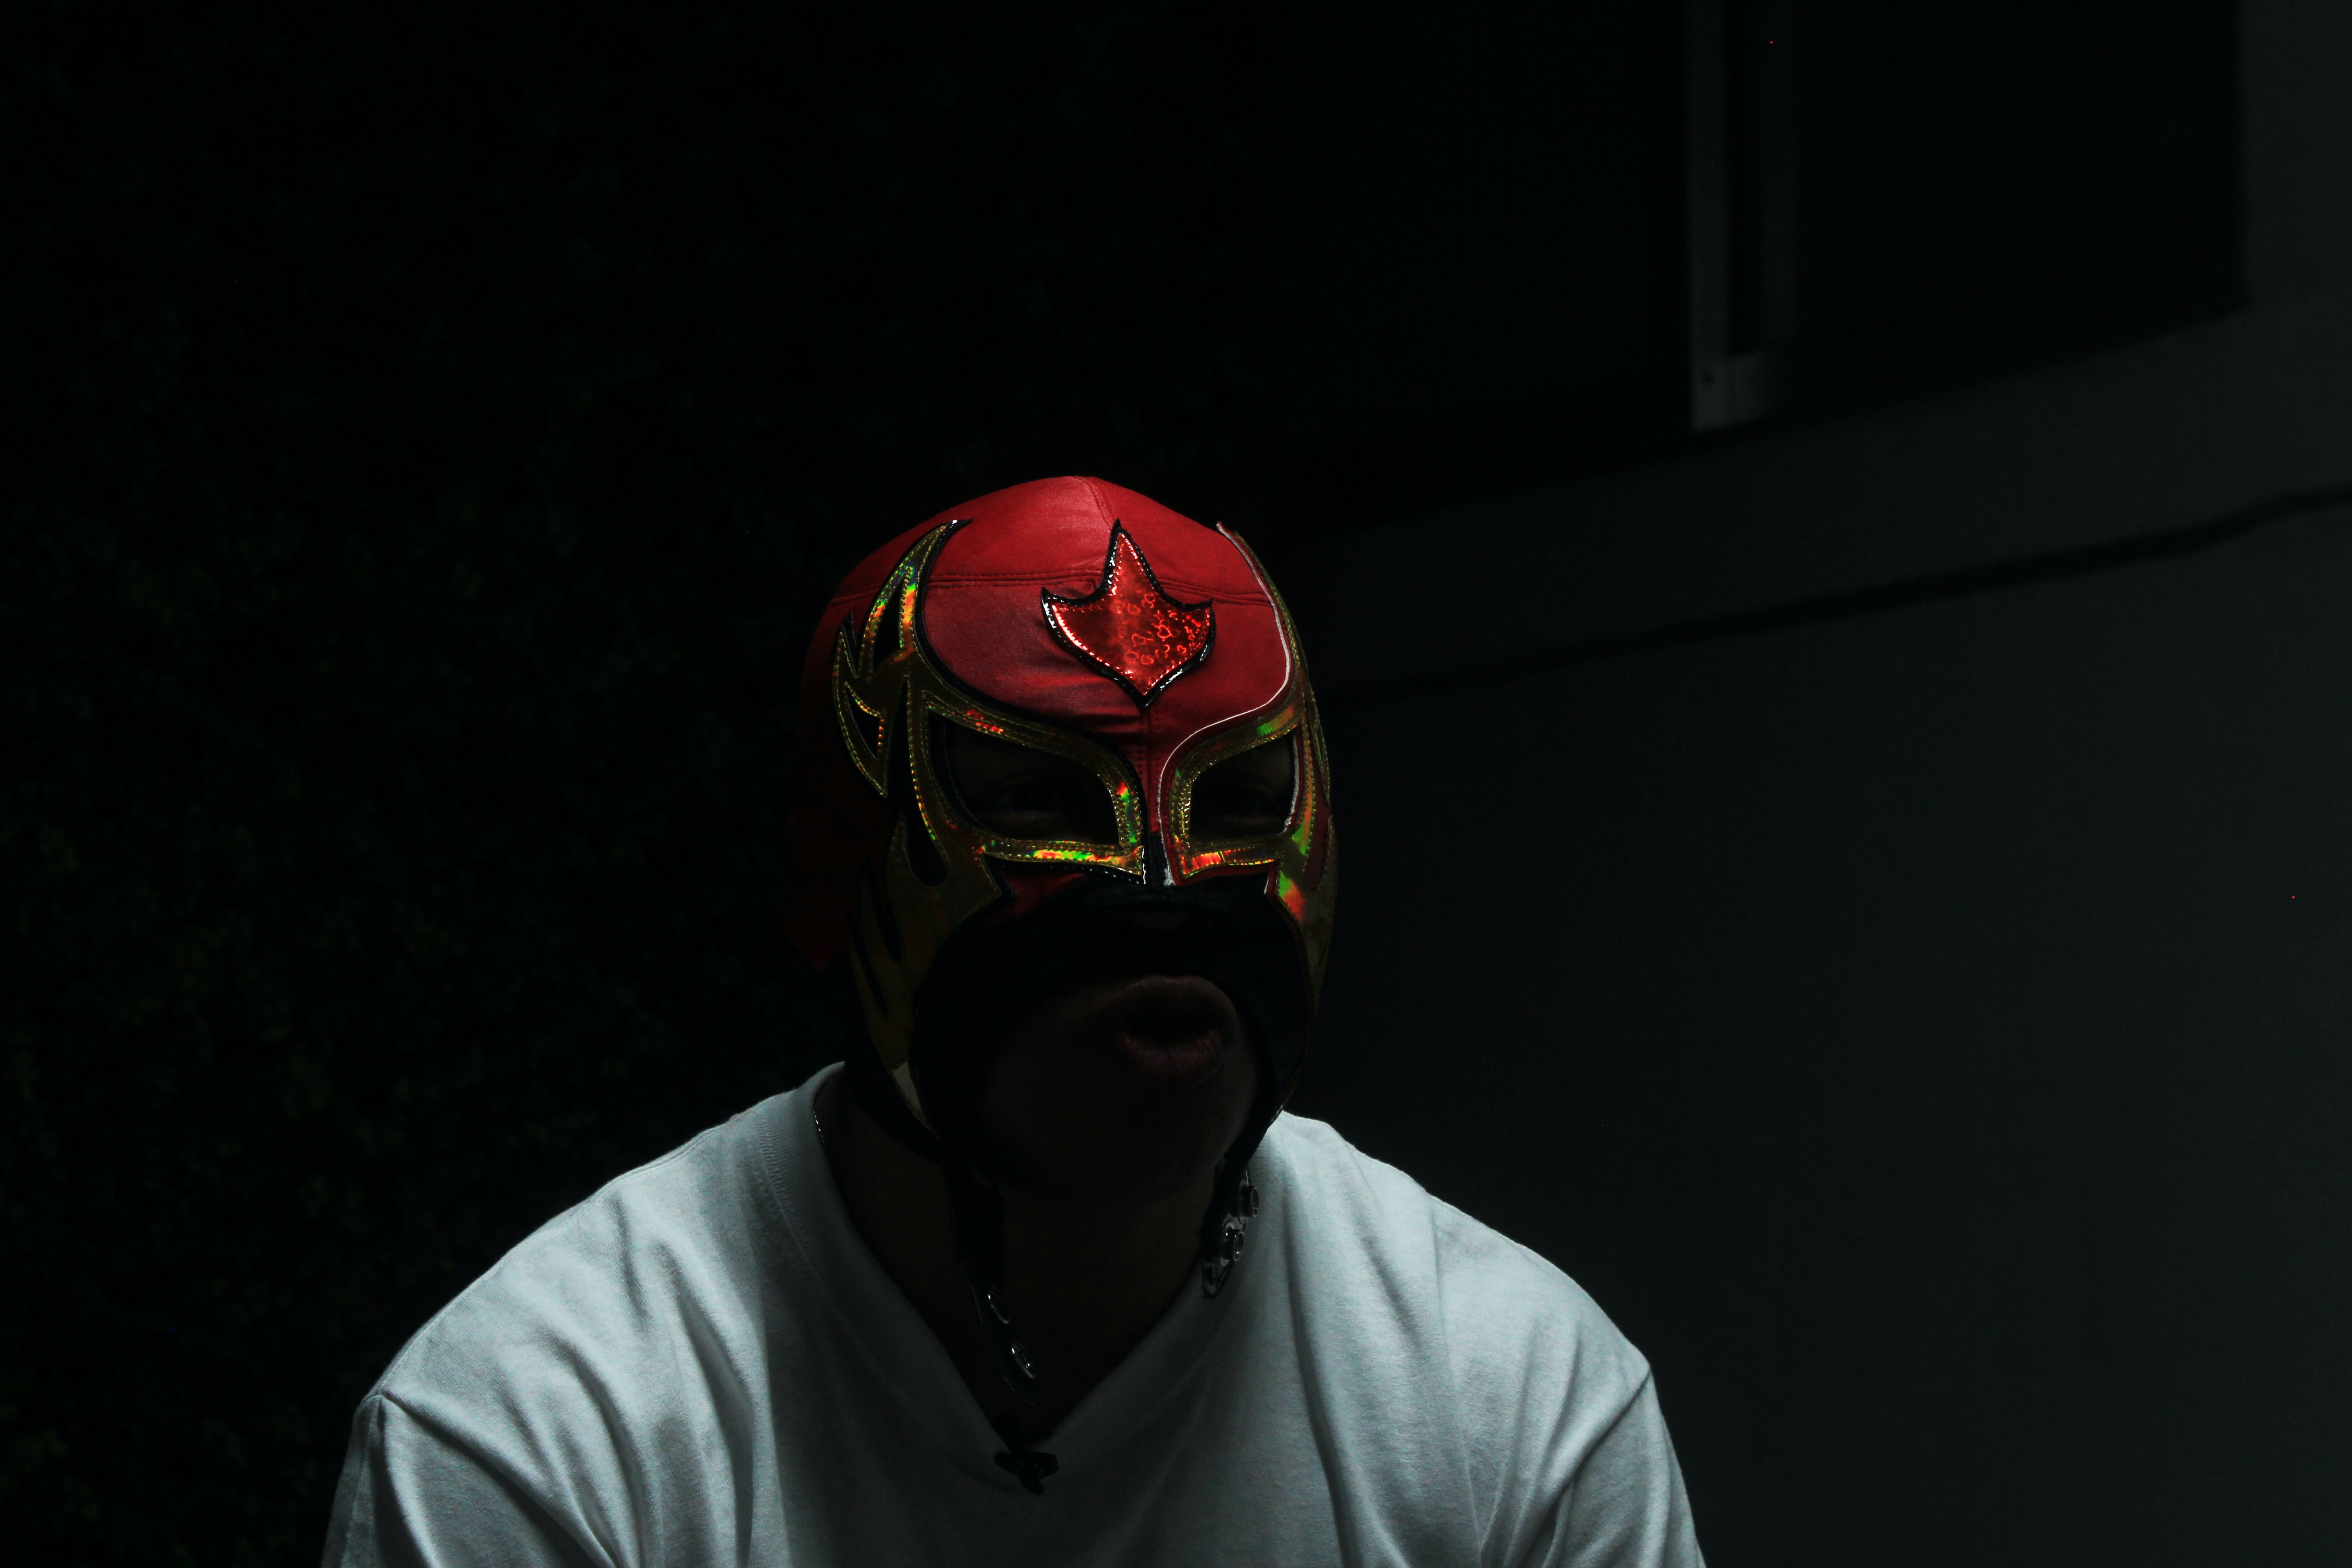 man wearing red mask and white shirt